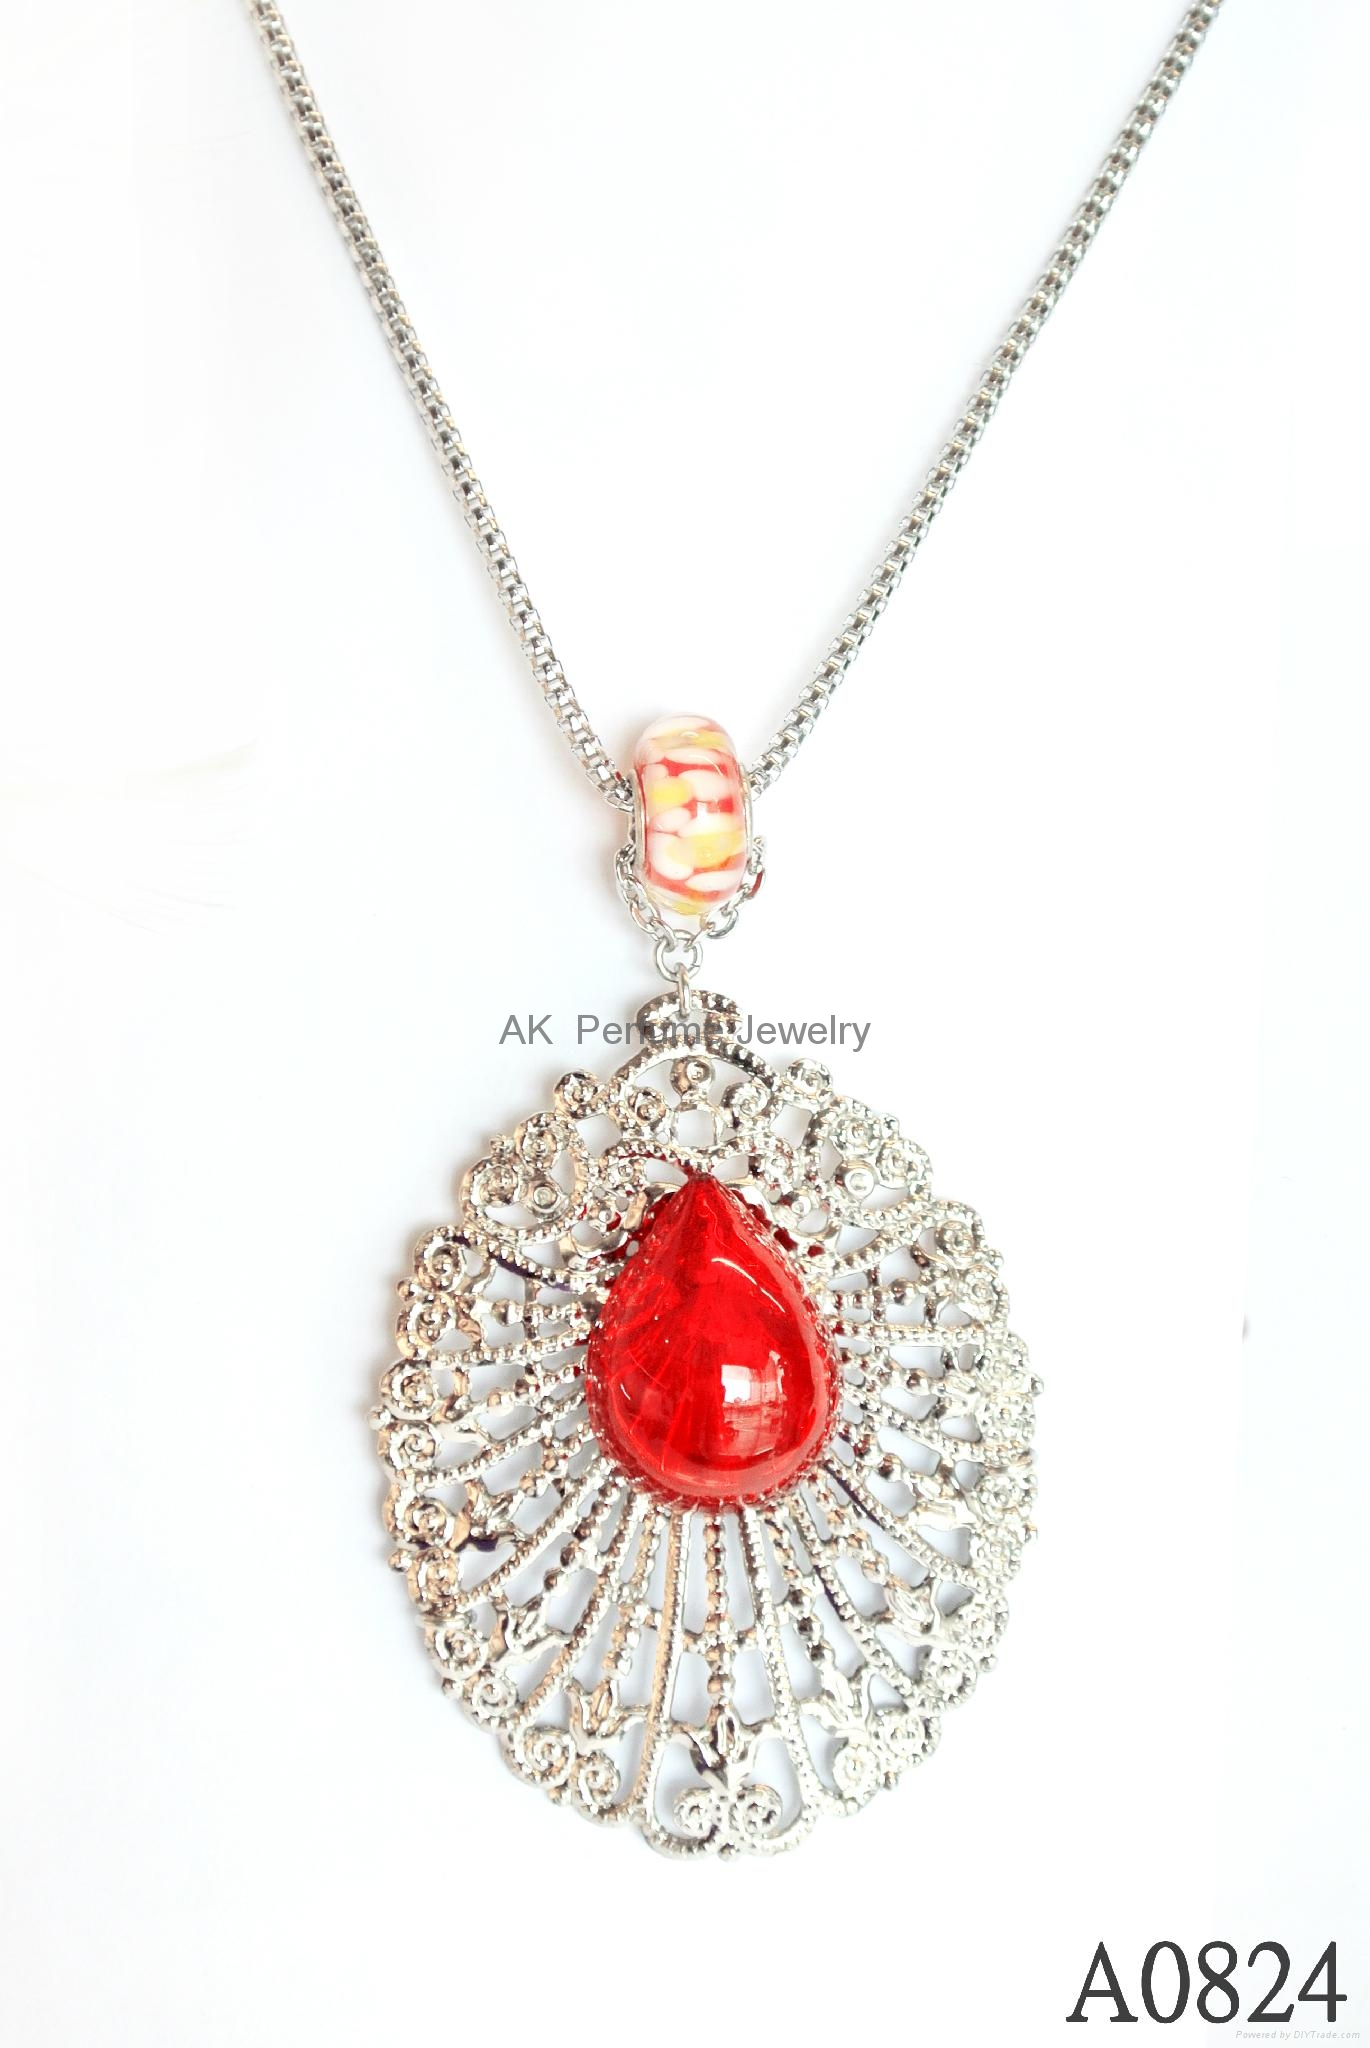 Perfume Necklace 2